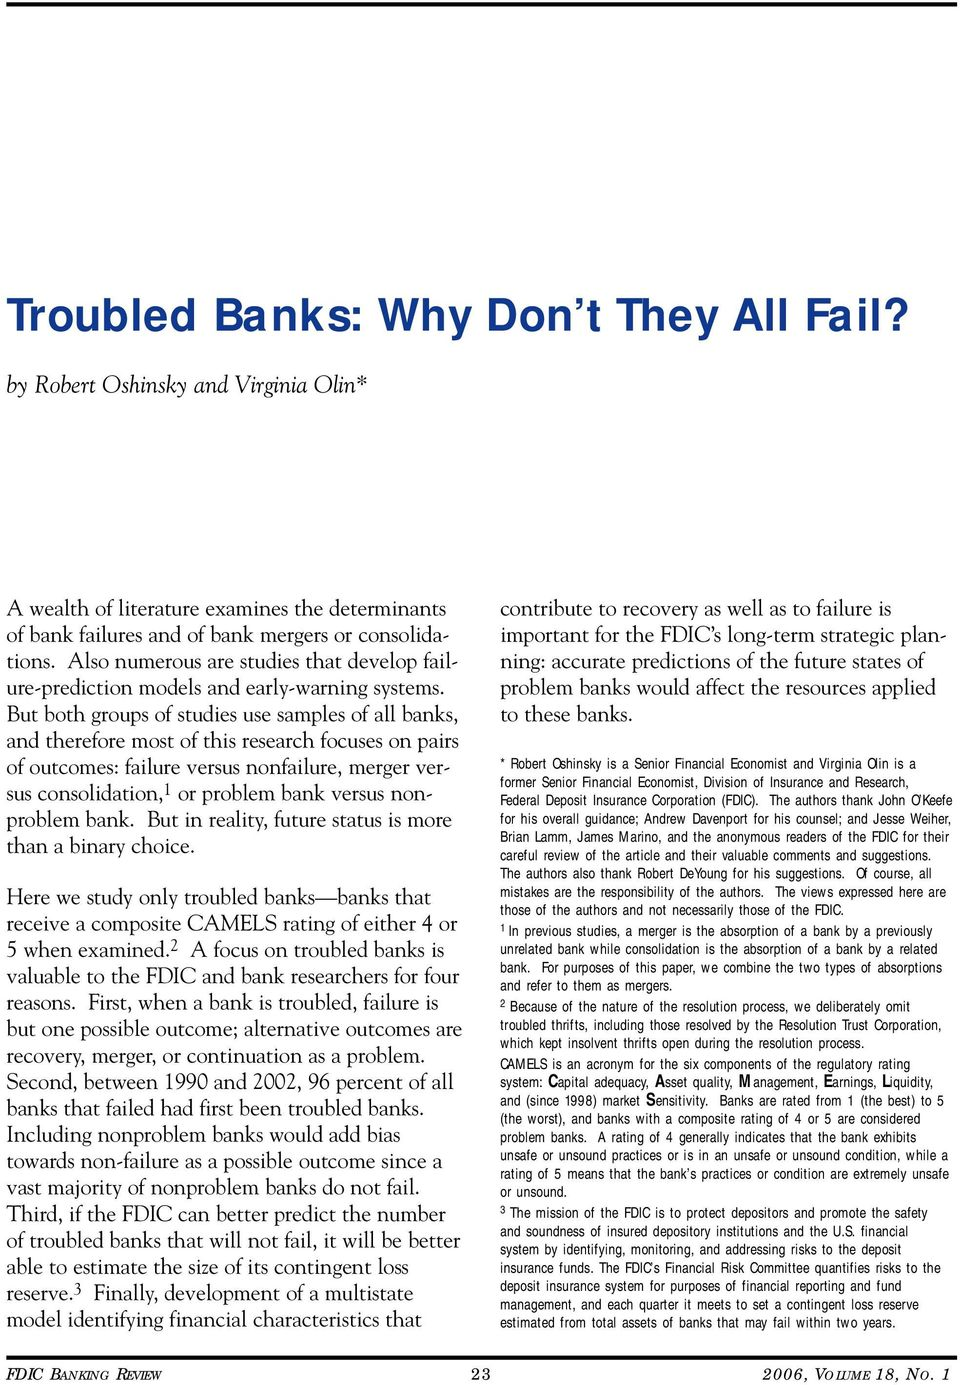 But both groups of studies use samples of all banks, and therefore most of this research focuses on pairs of outcomes: failure versus nonfailure, merger versus consolidation, 1 or problem bank versus